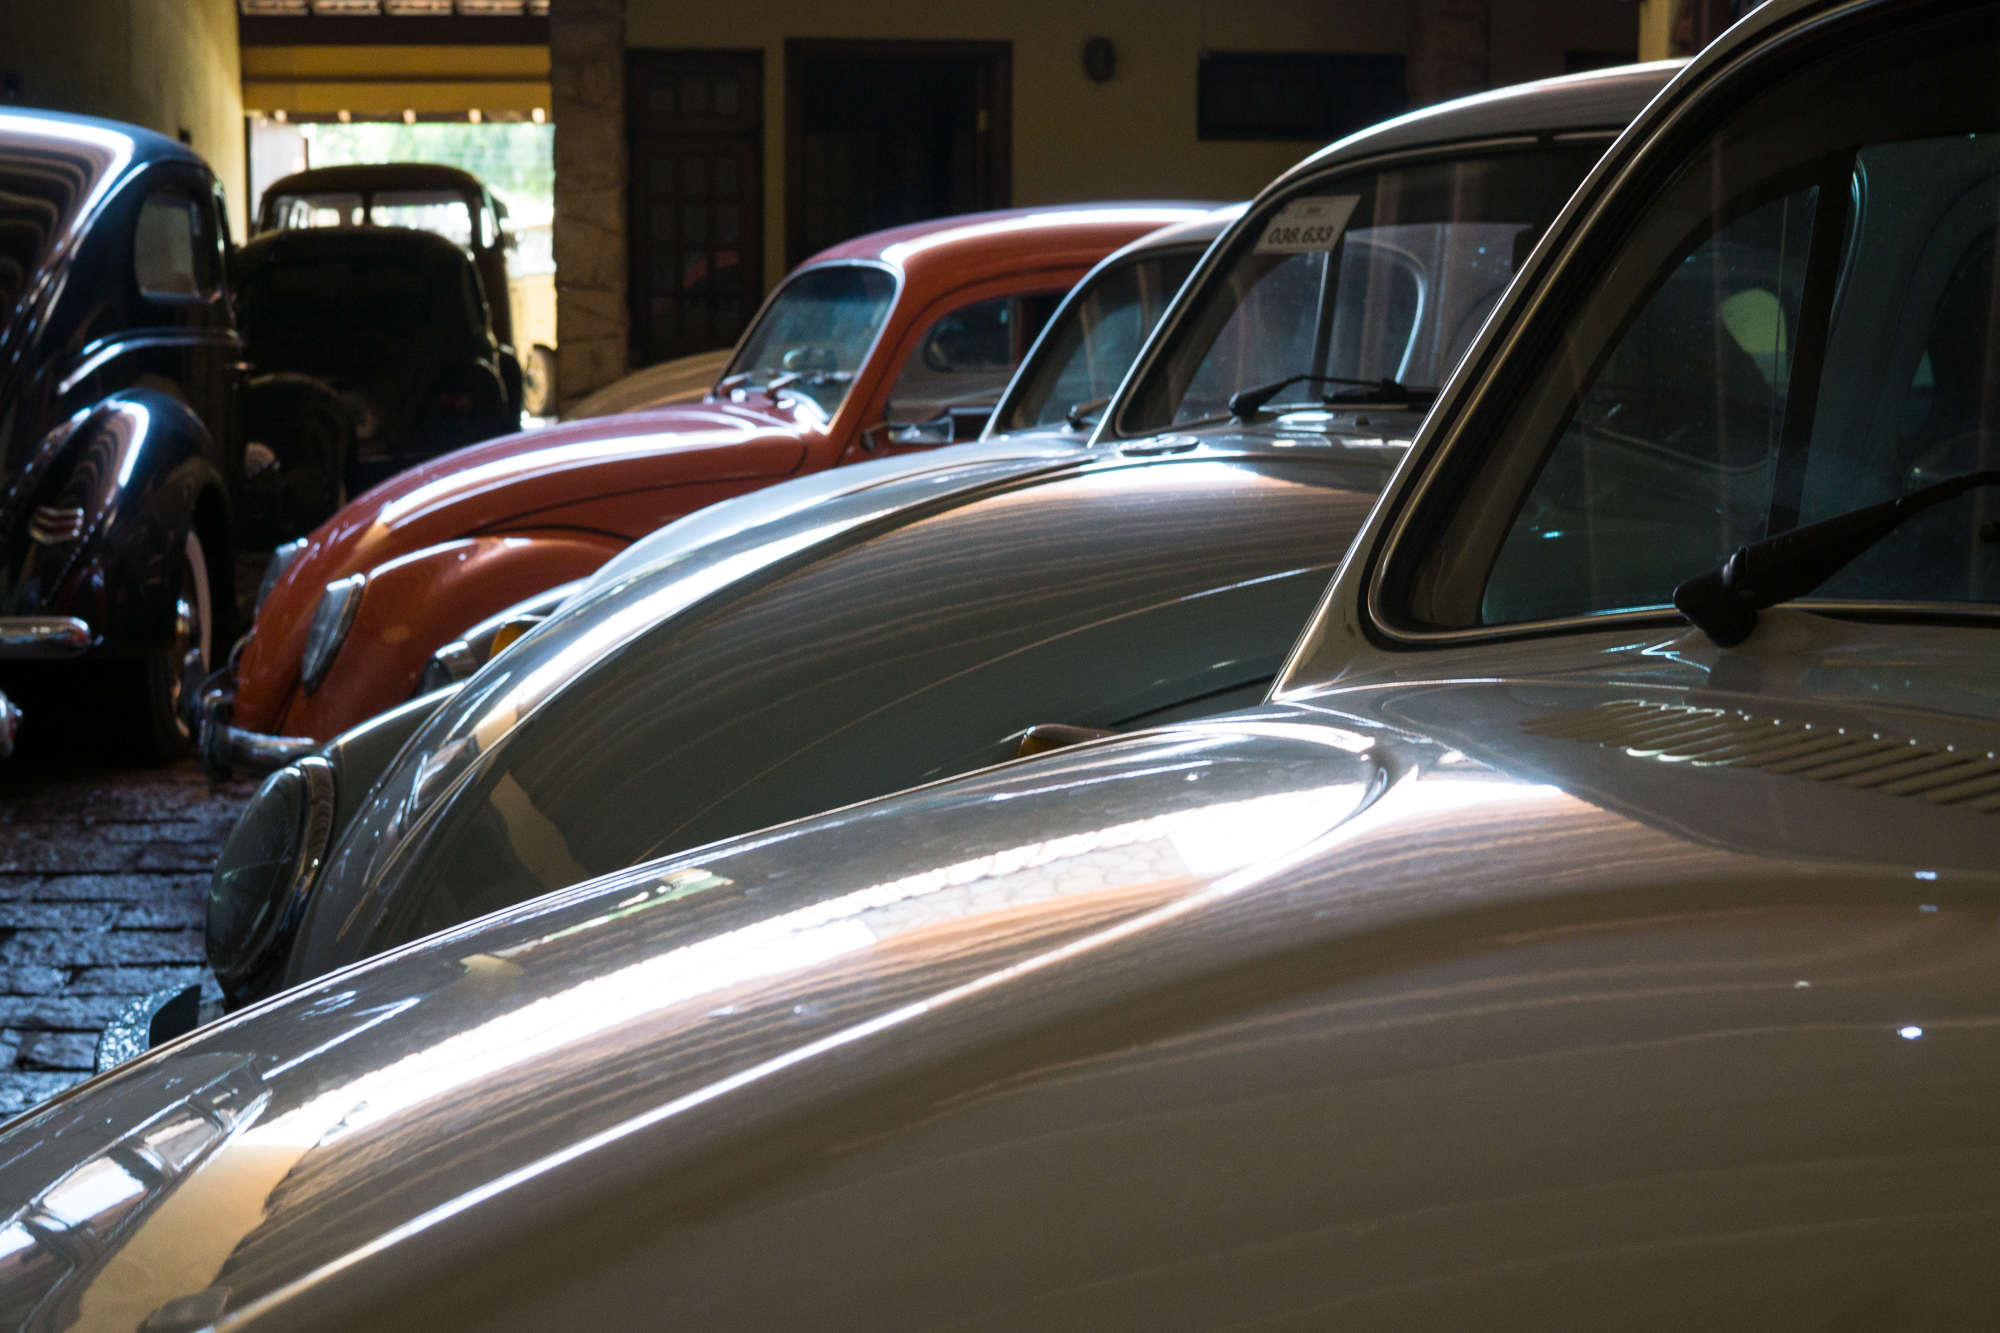 VW Beetles in a Shed